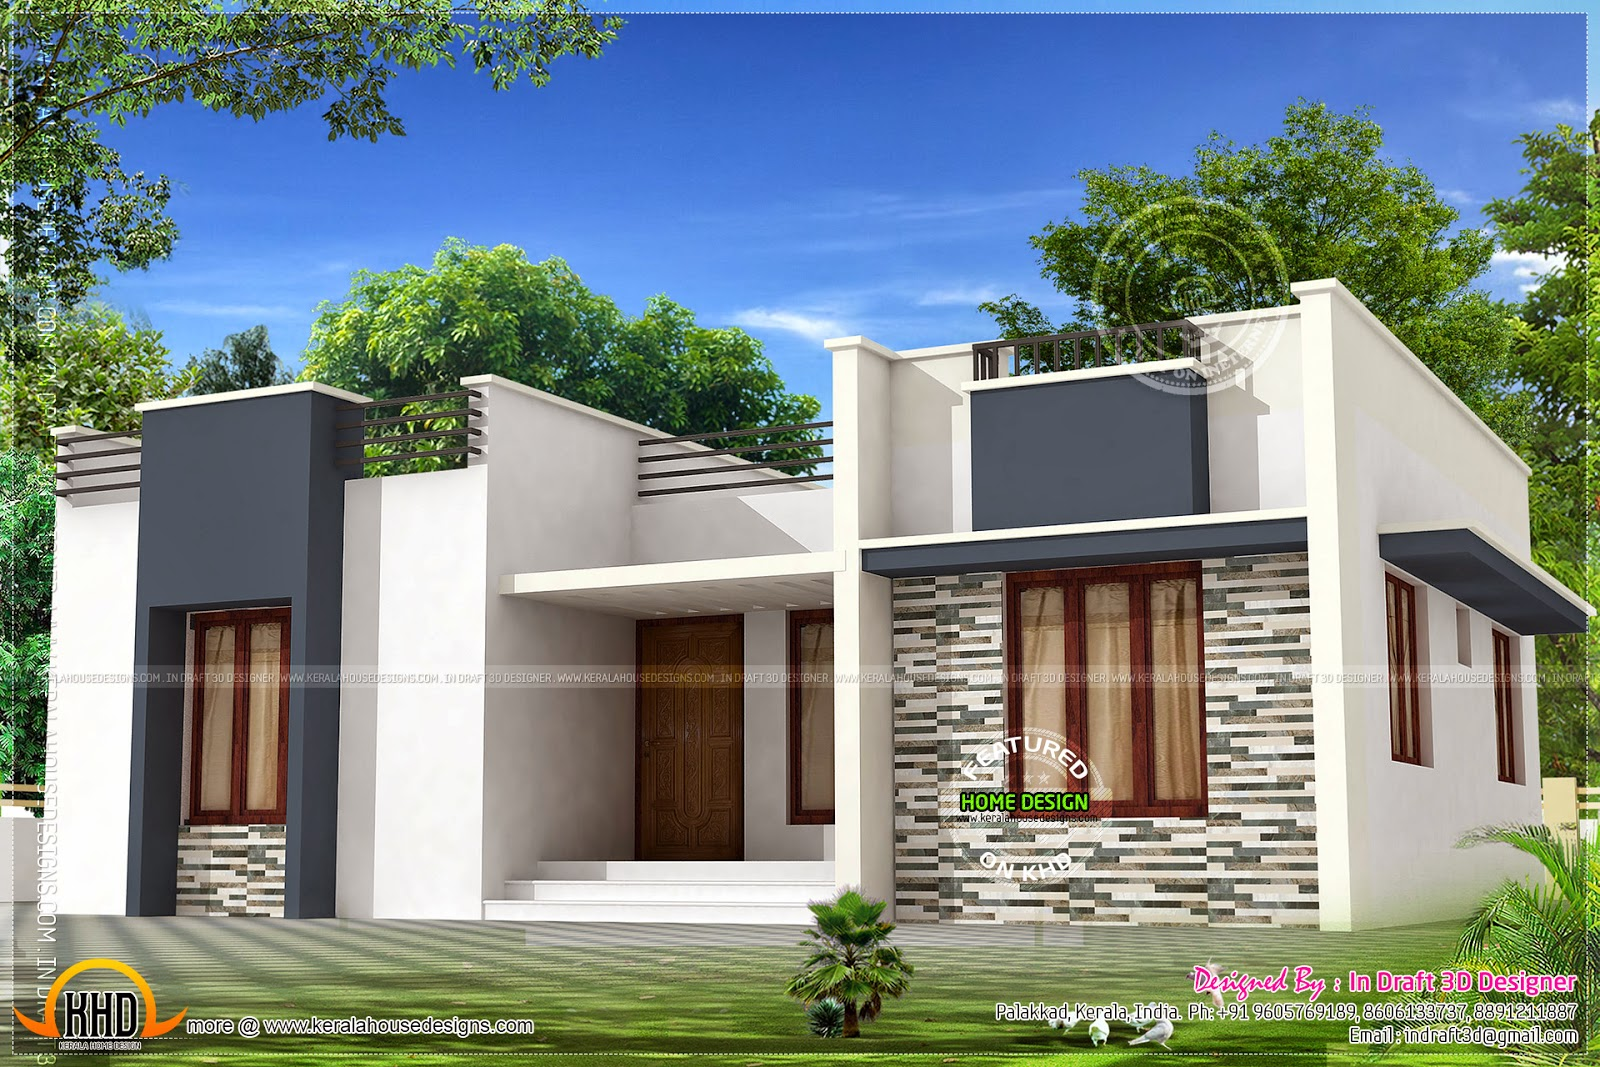 3 Bed Room Budget Home Design 971 Sq Ft Kerala Home Design And